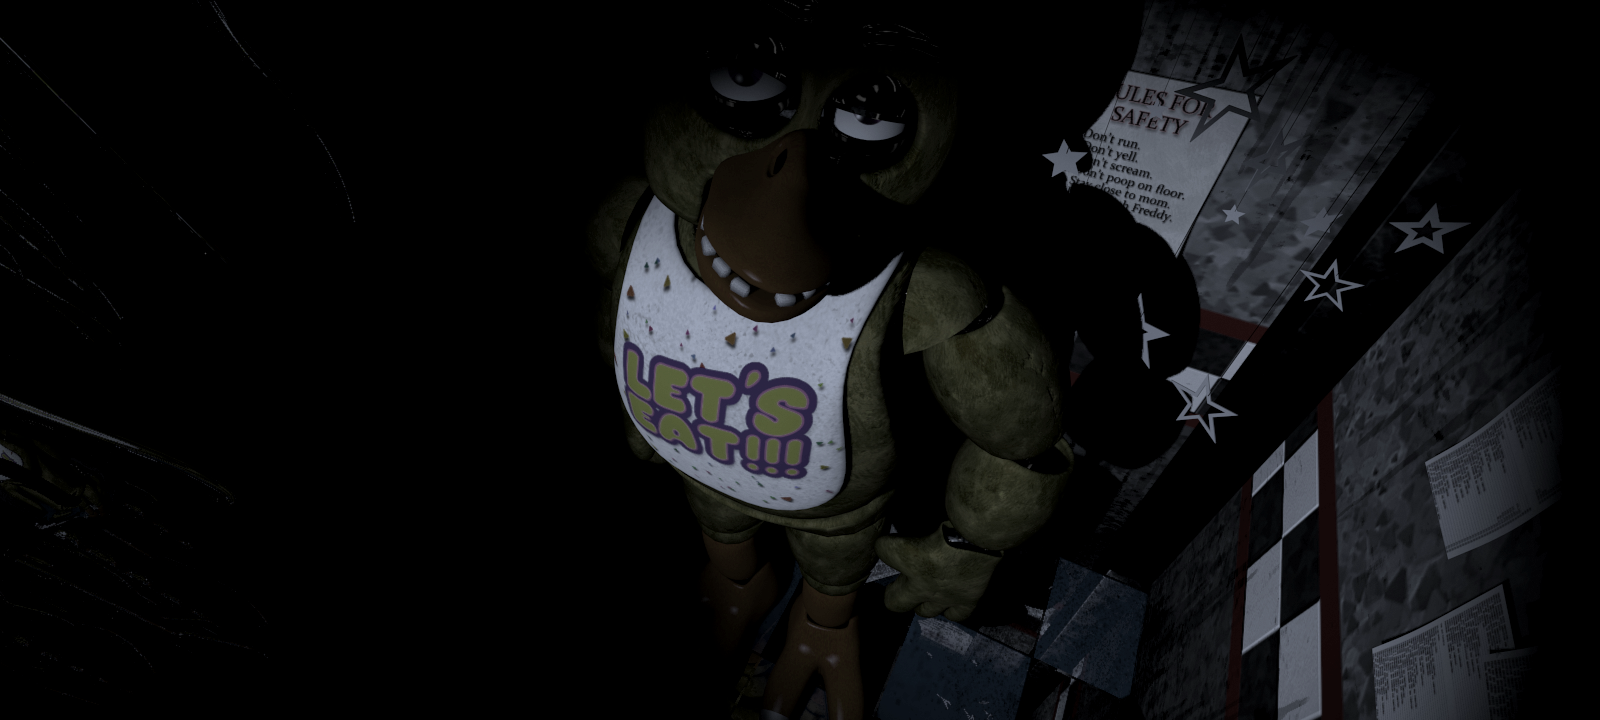 Is 1:56 Me: Wait. Chica is where. Wait. SHE IS OVER HERE?!